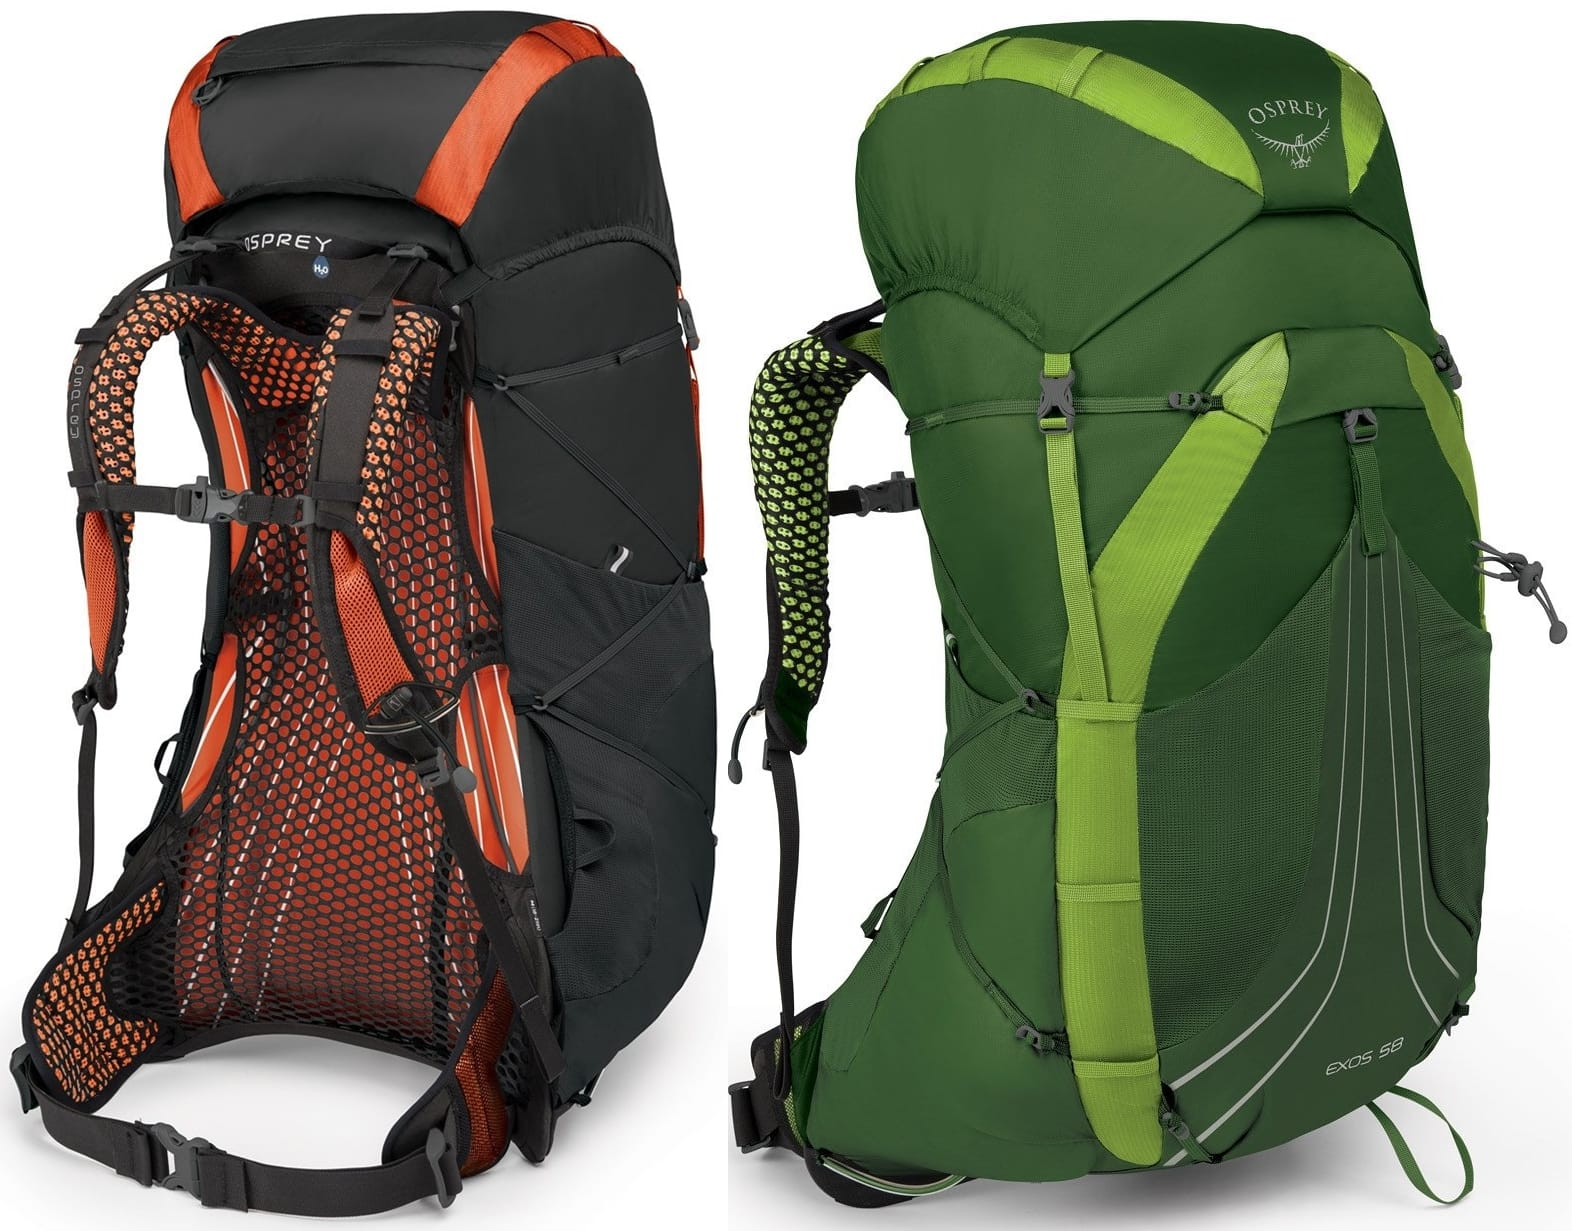 One of Osprey's smallest backpacks, this pack excels at overnight and weekend trips for those who enjoy going light